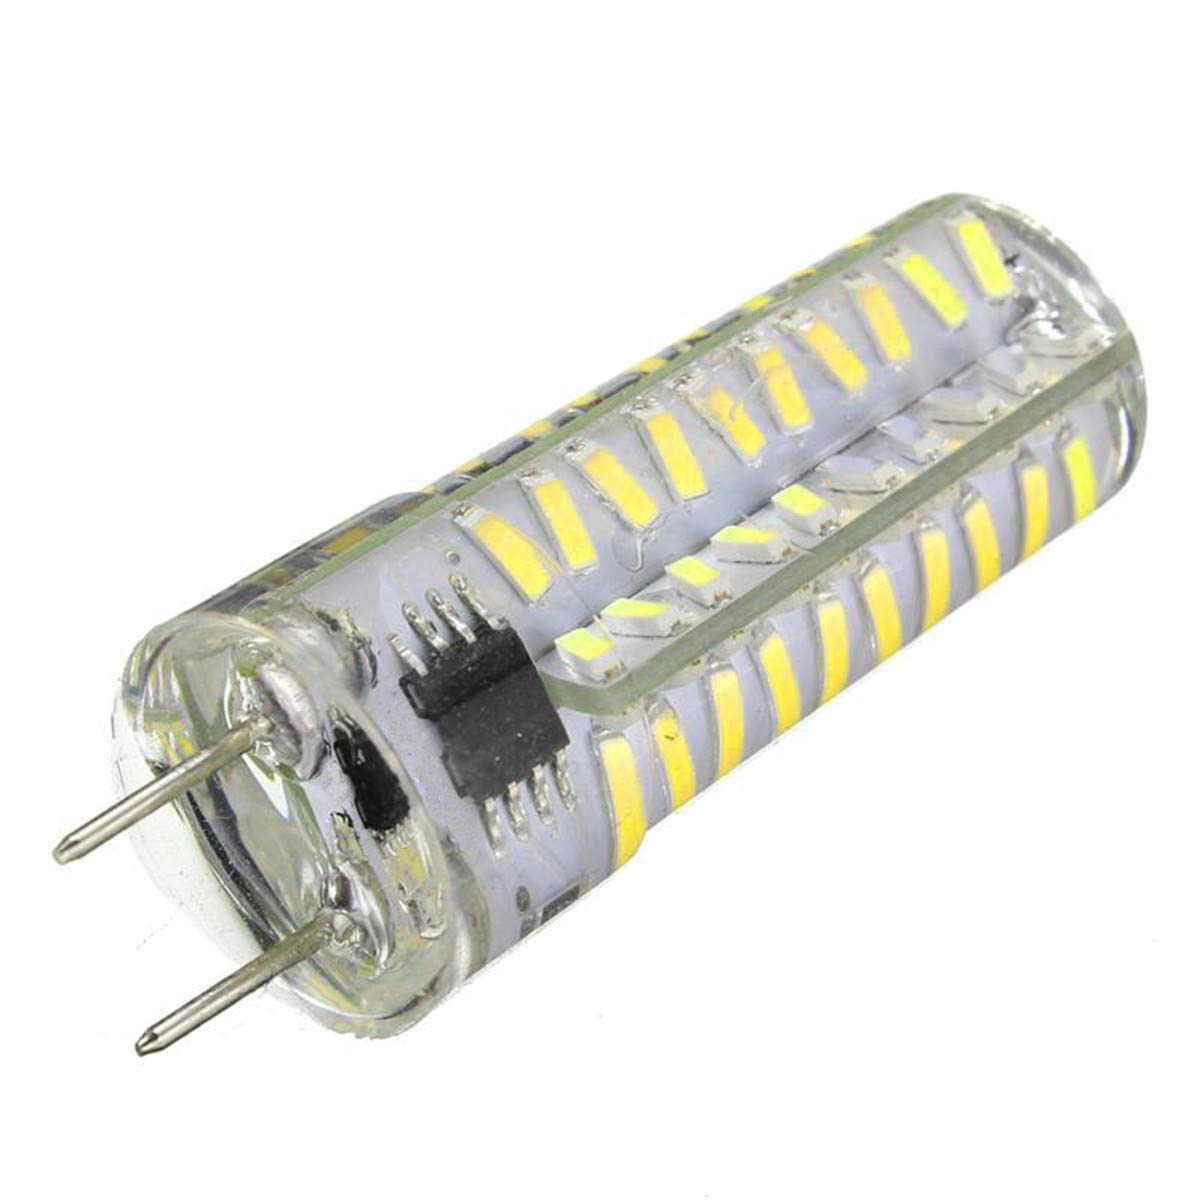 HENGMANHONG LED Silica Gel Lamp AC 110-130V Dimmable G8 5W 80 LED 4014 SMD 400-500 LM Warm White Cool White 1PC Size : Cold White